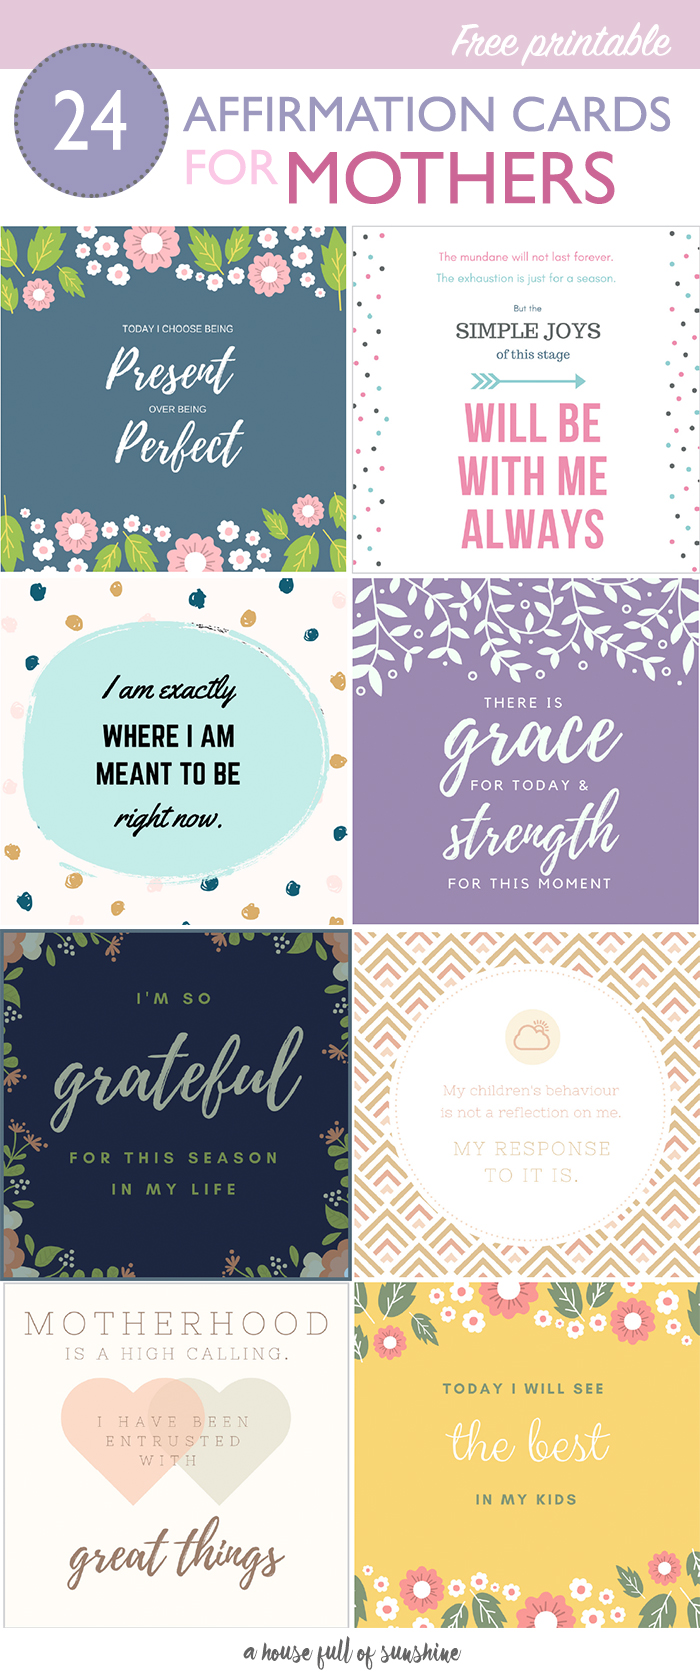 photo about Free Printable Affirmation Cards referred to as Free of charge printable confirmation playing cards for moms A Home Finish